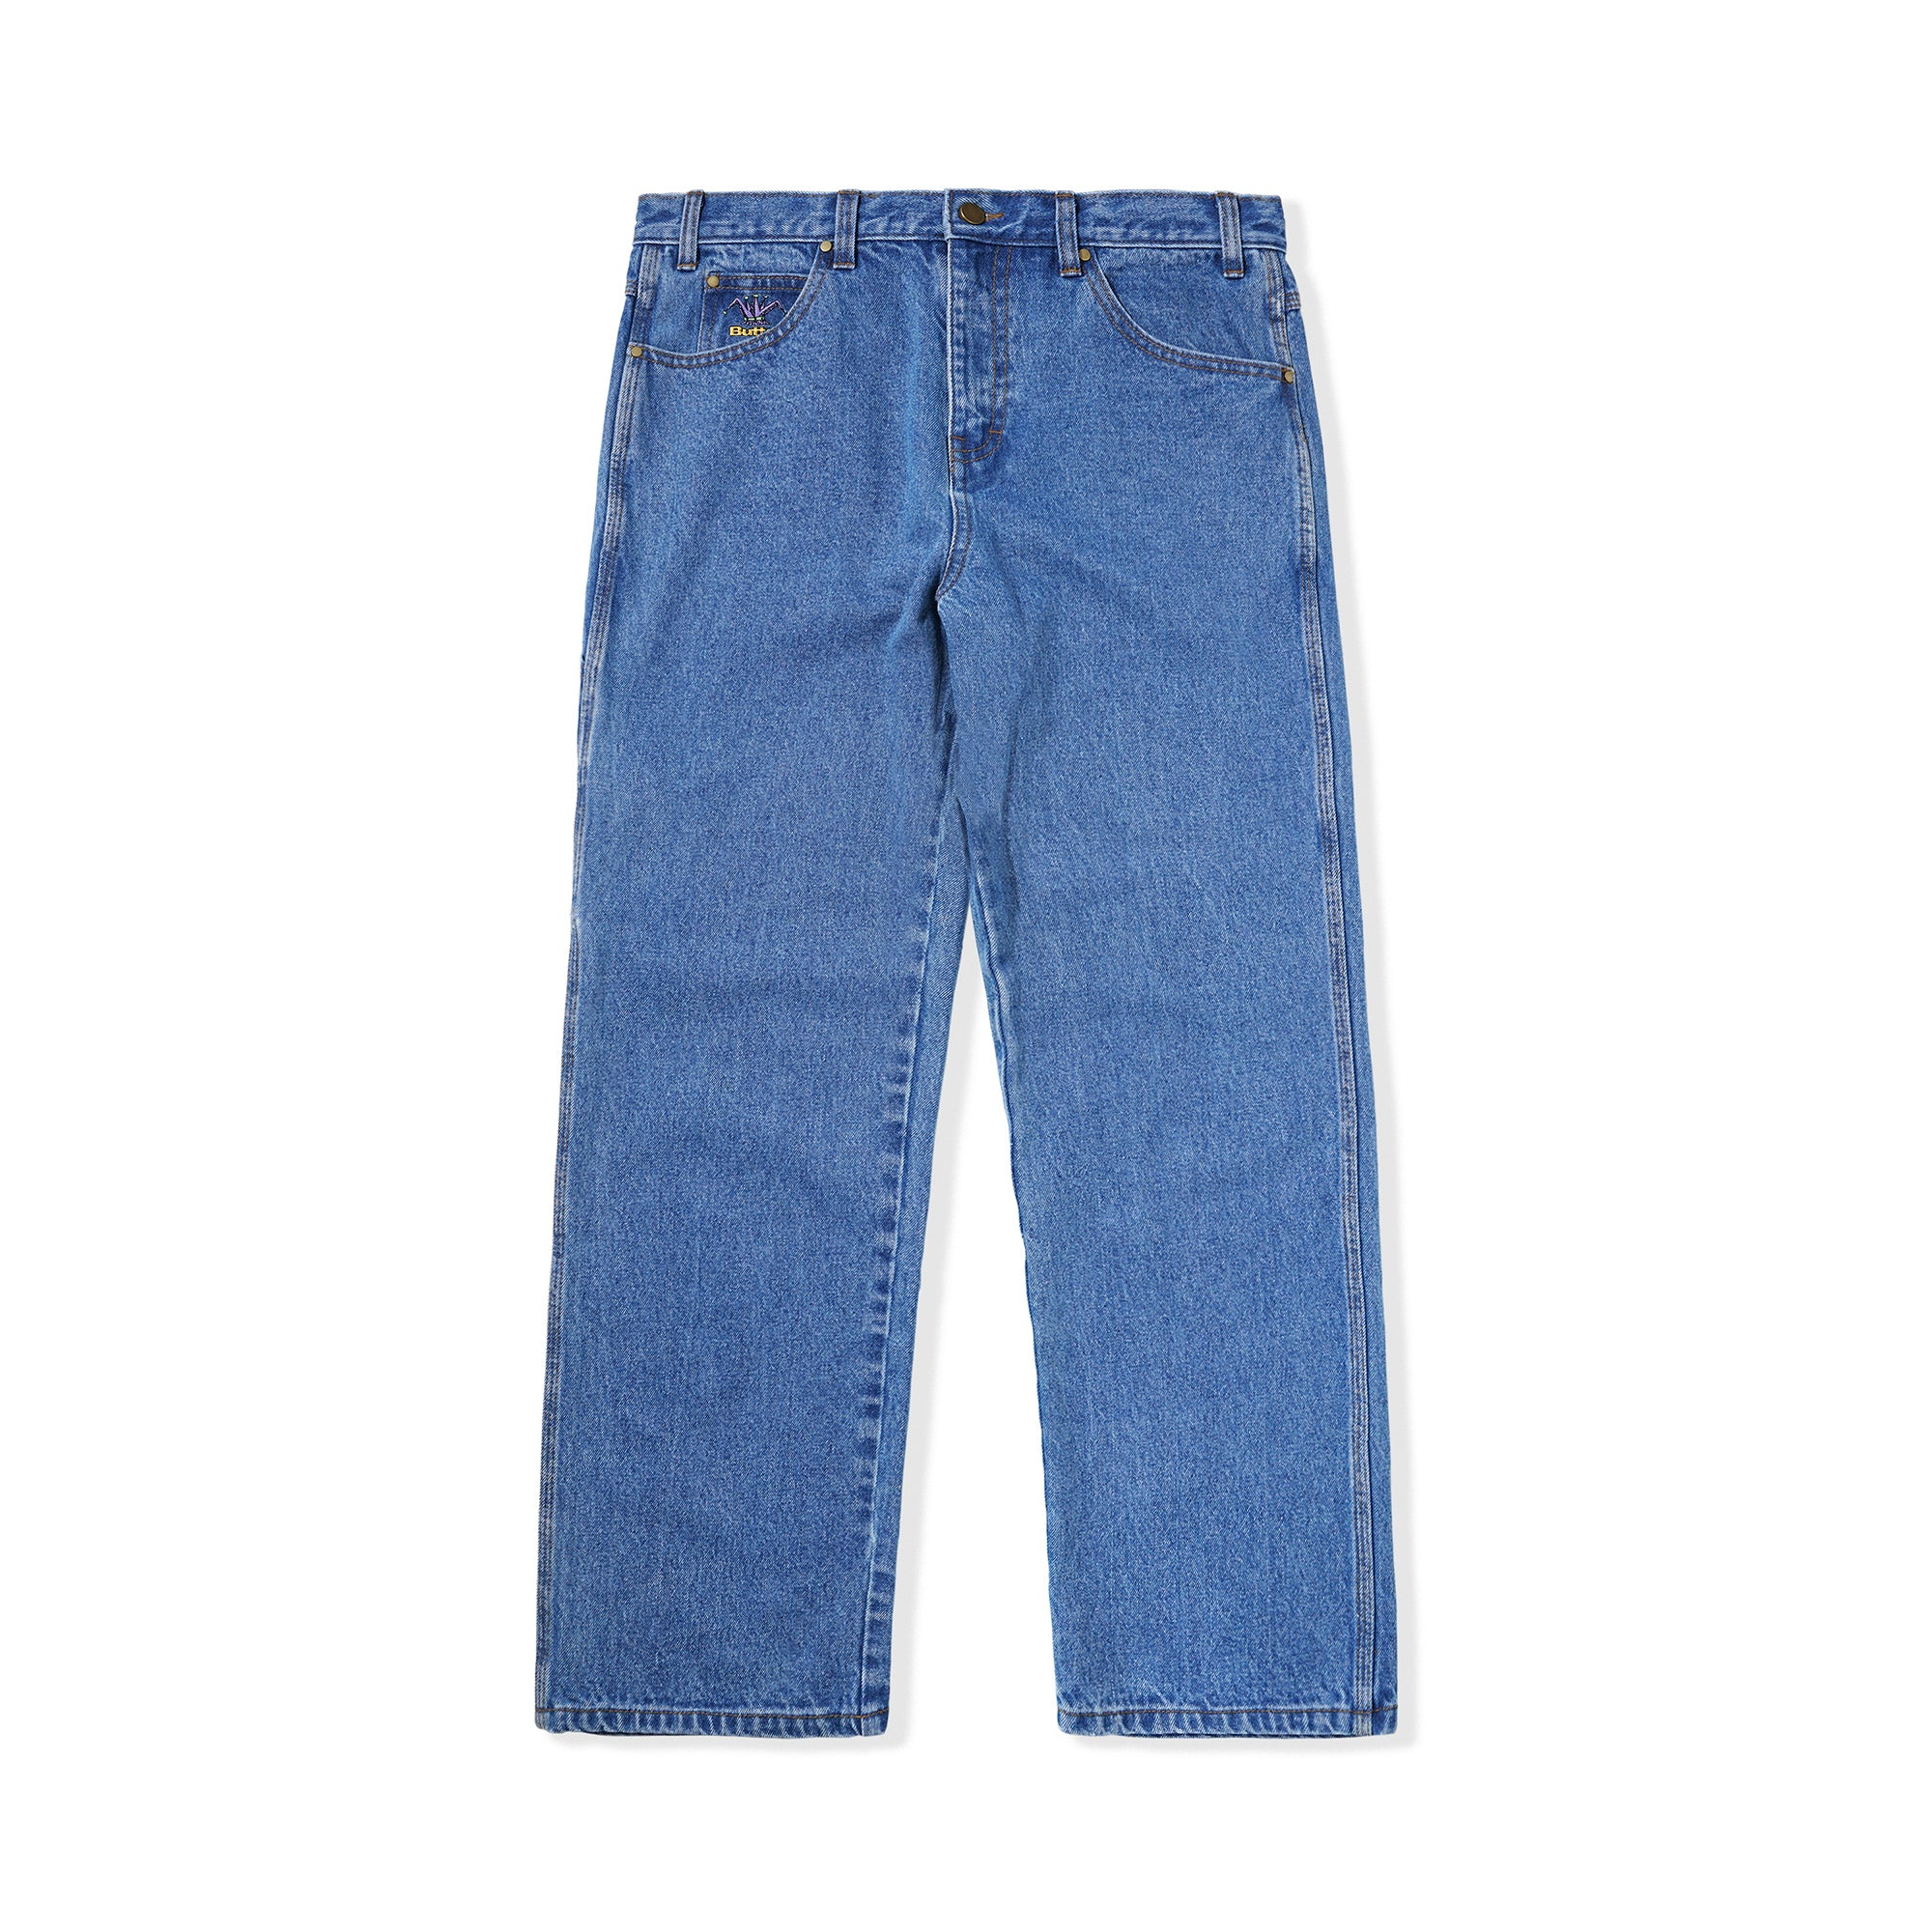 Butter Goods Royal Denim Jeans Product Photo #2